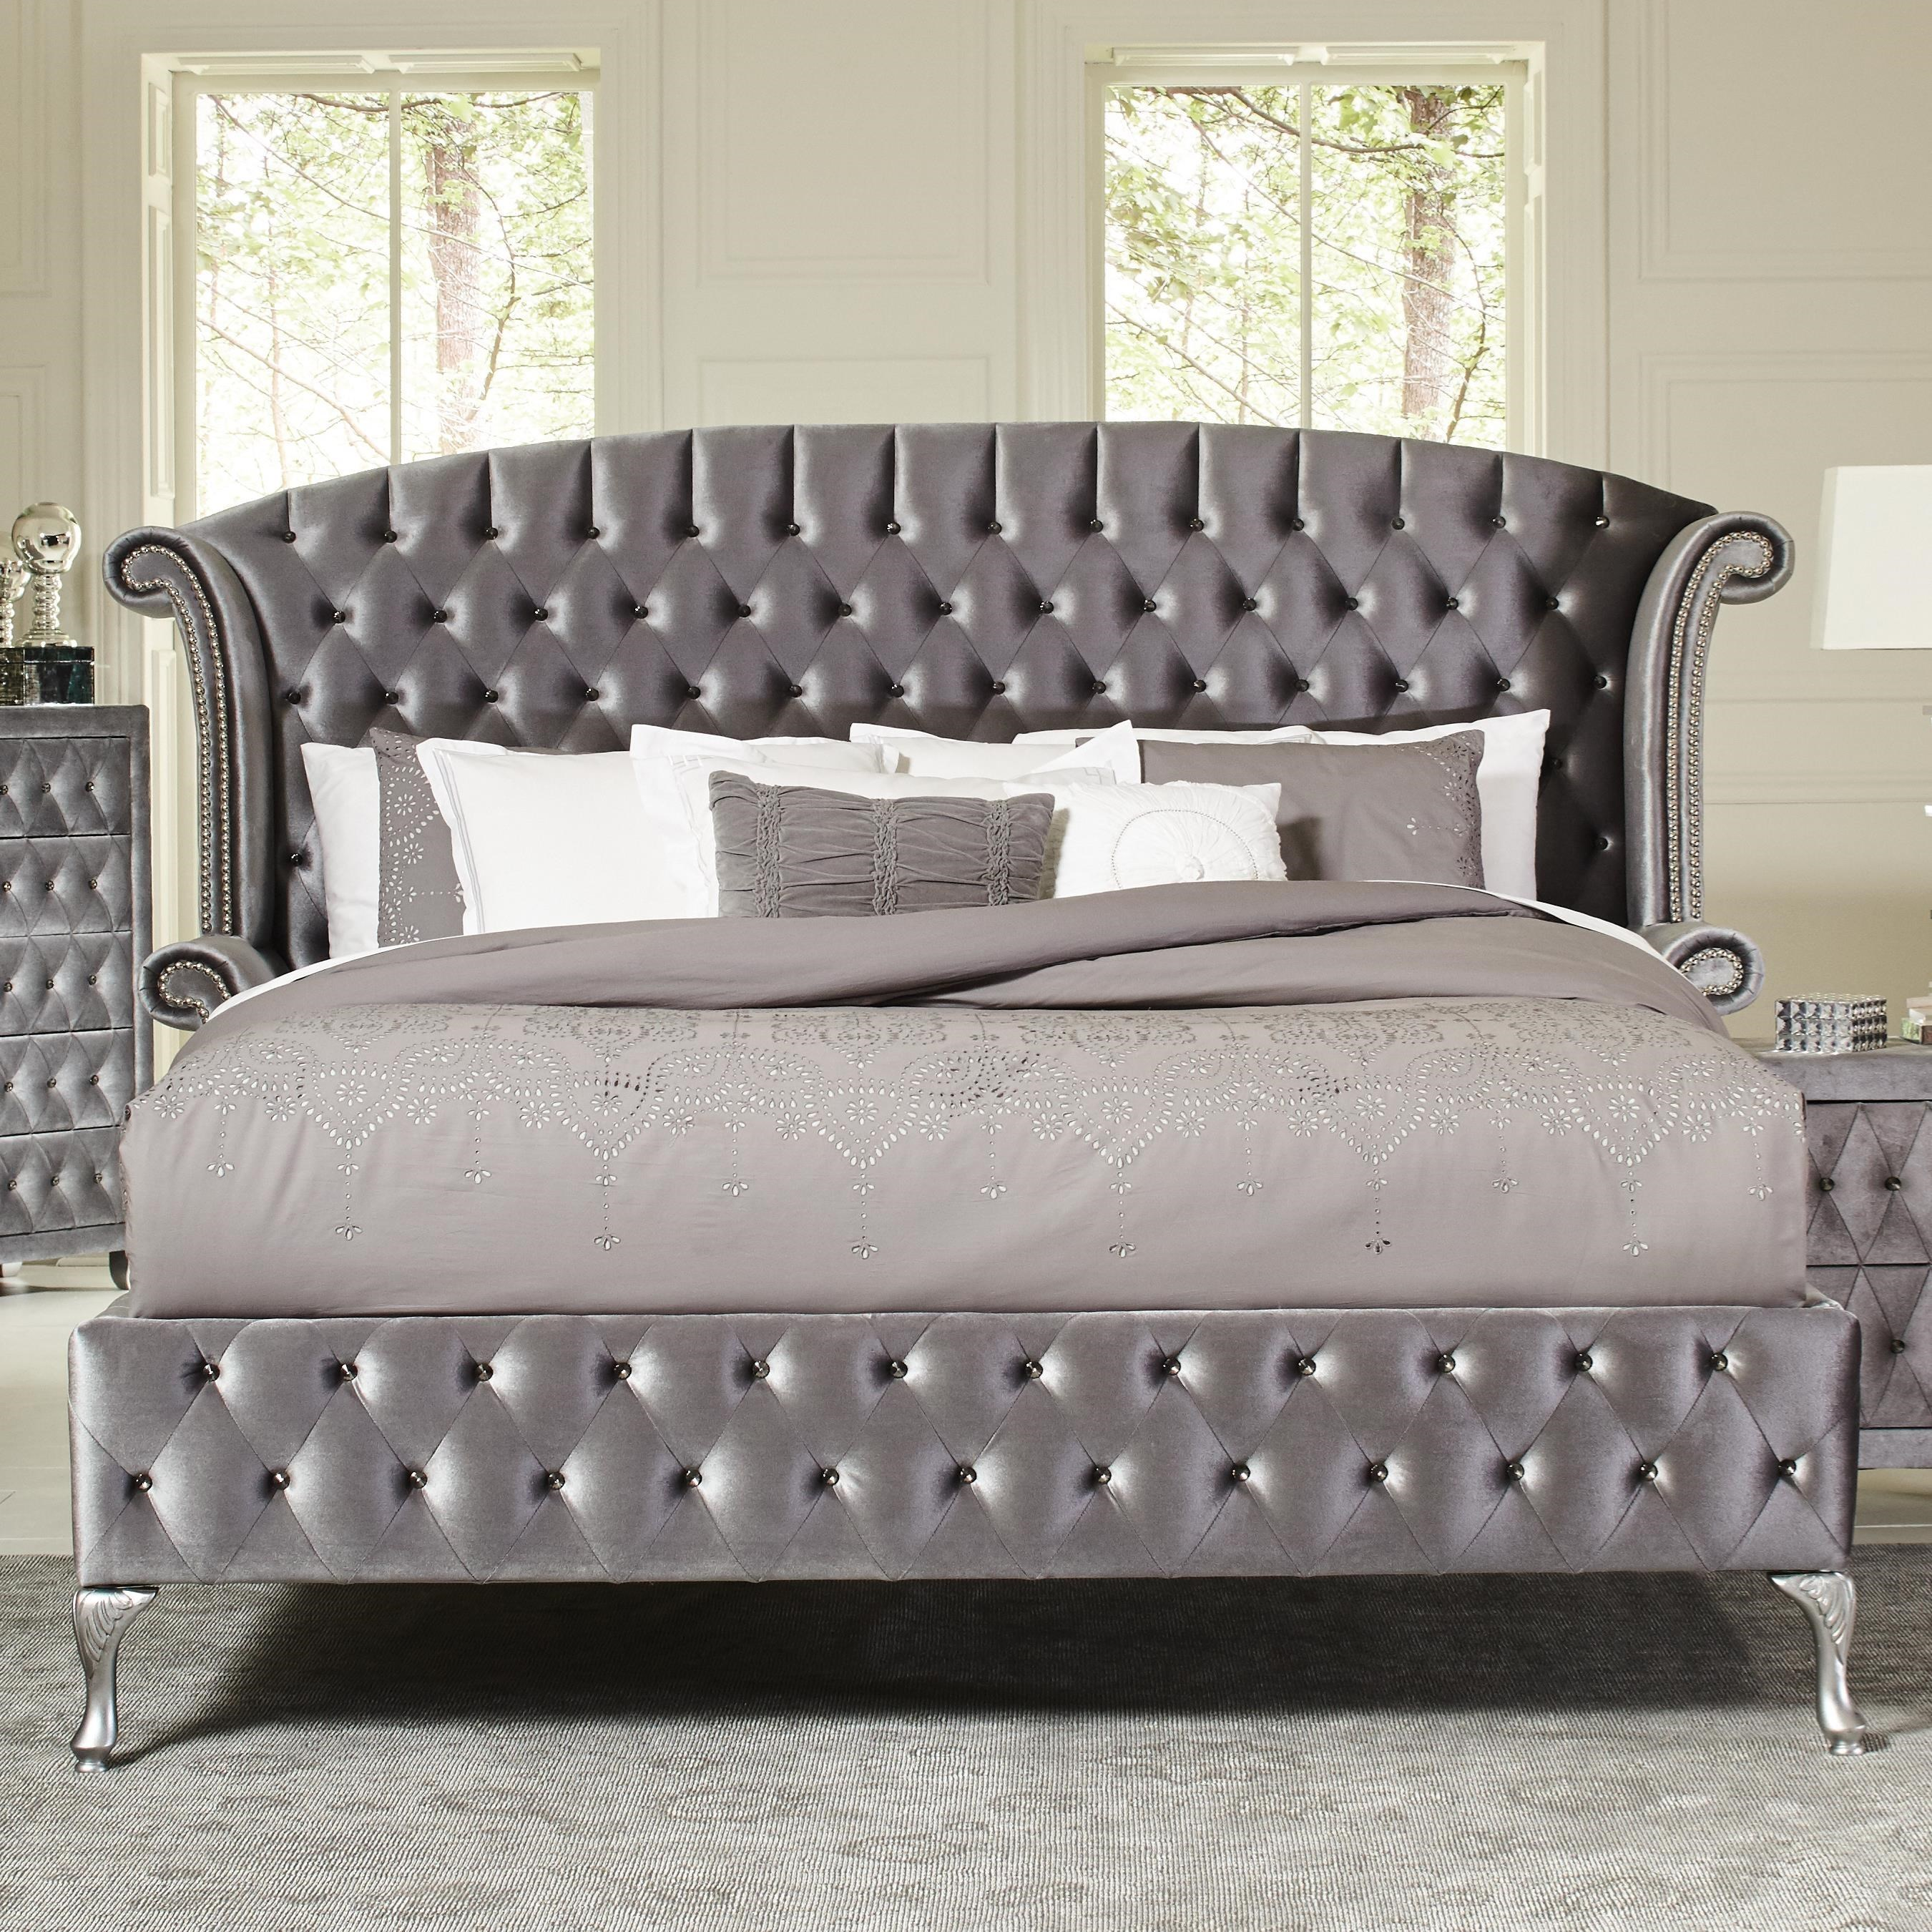 Coaster Deanna Upholstered Queen Bed with Nailhead Trim